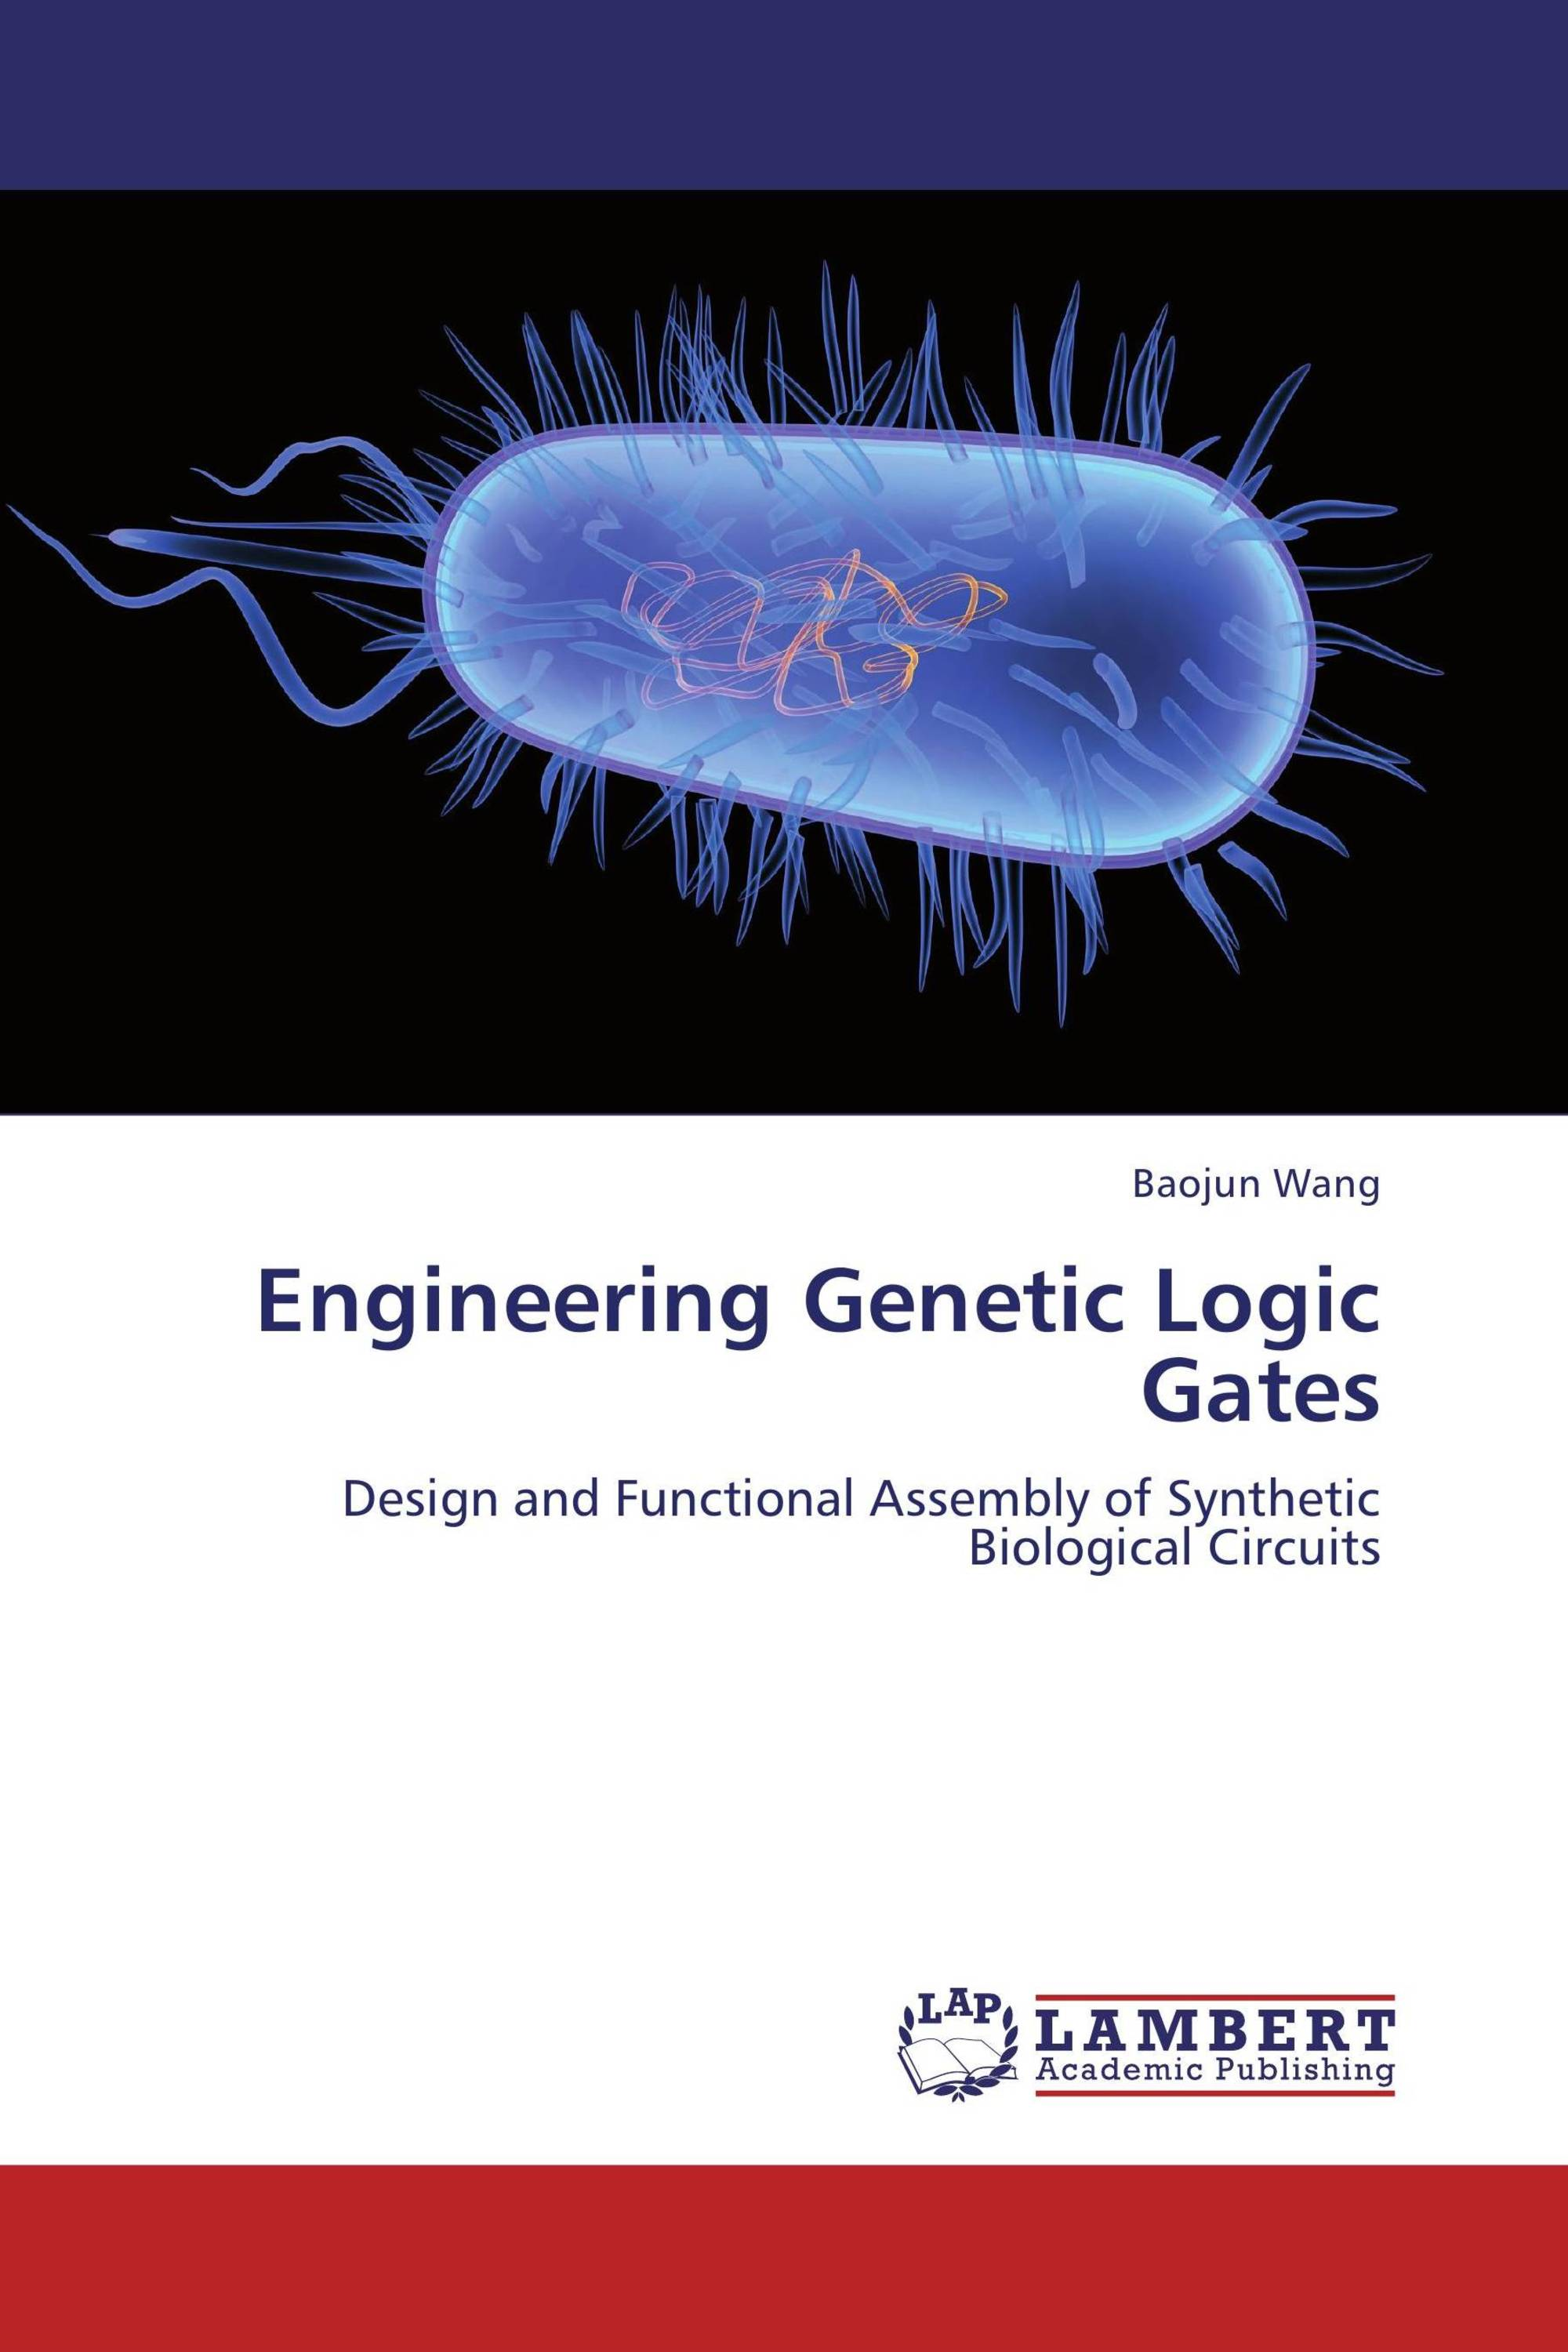 Engineering Genetic Logic Gates